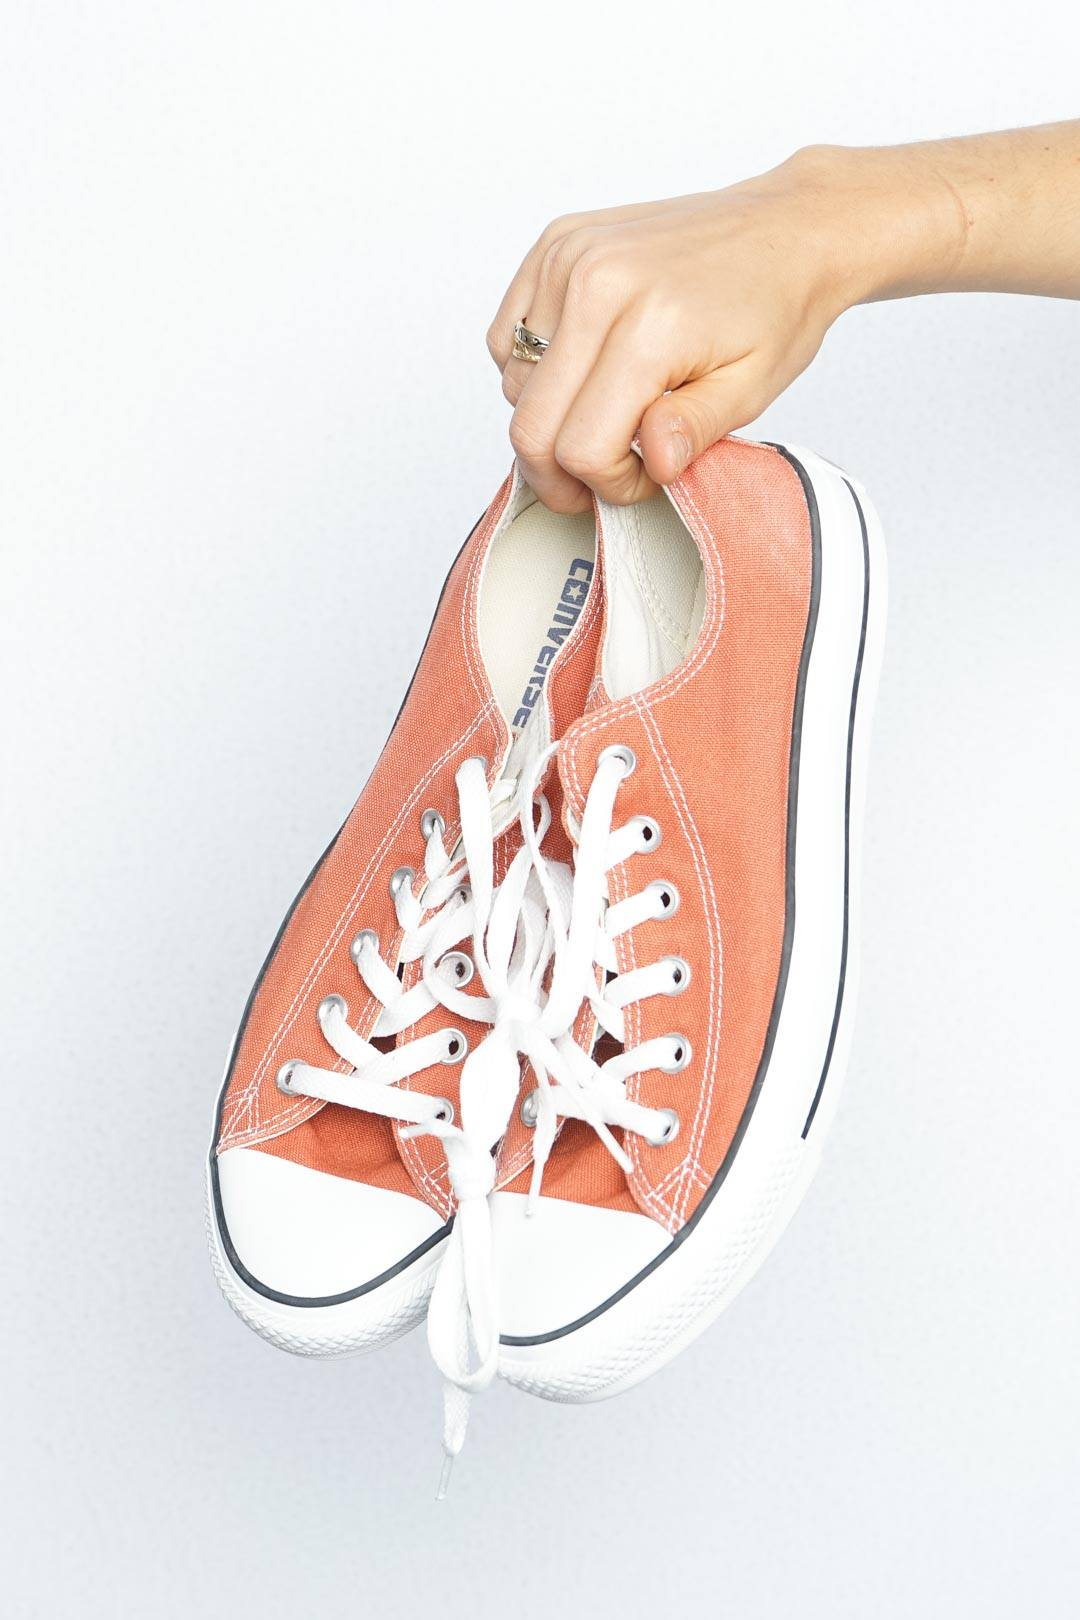 Converse All-Star Orange Sneaker - VinoKilo.com